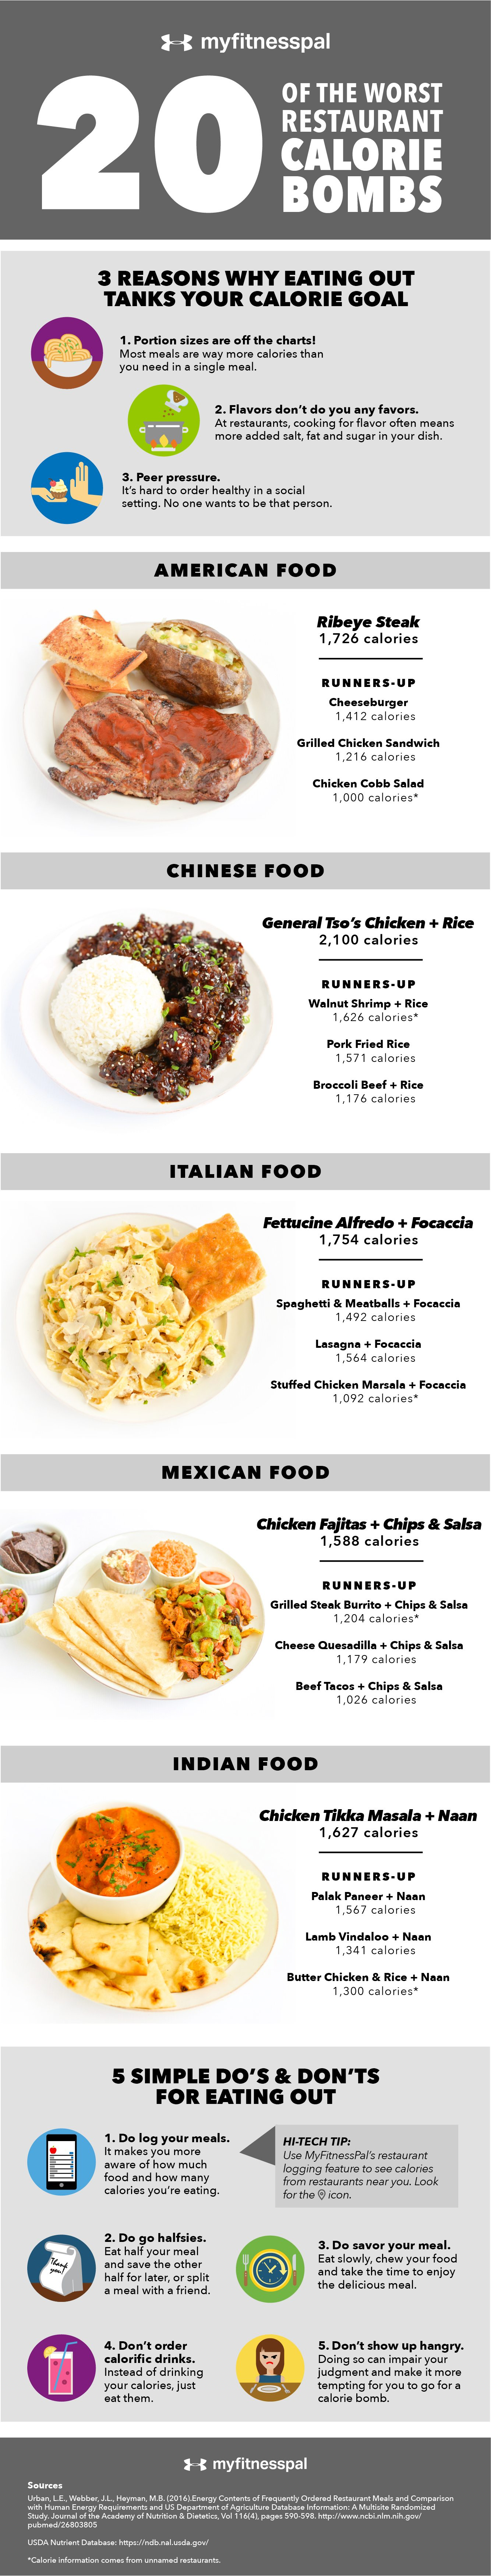 20 of the Worst Restaurant Calorie Bombs